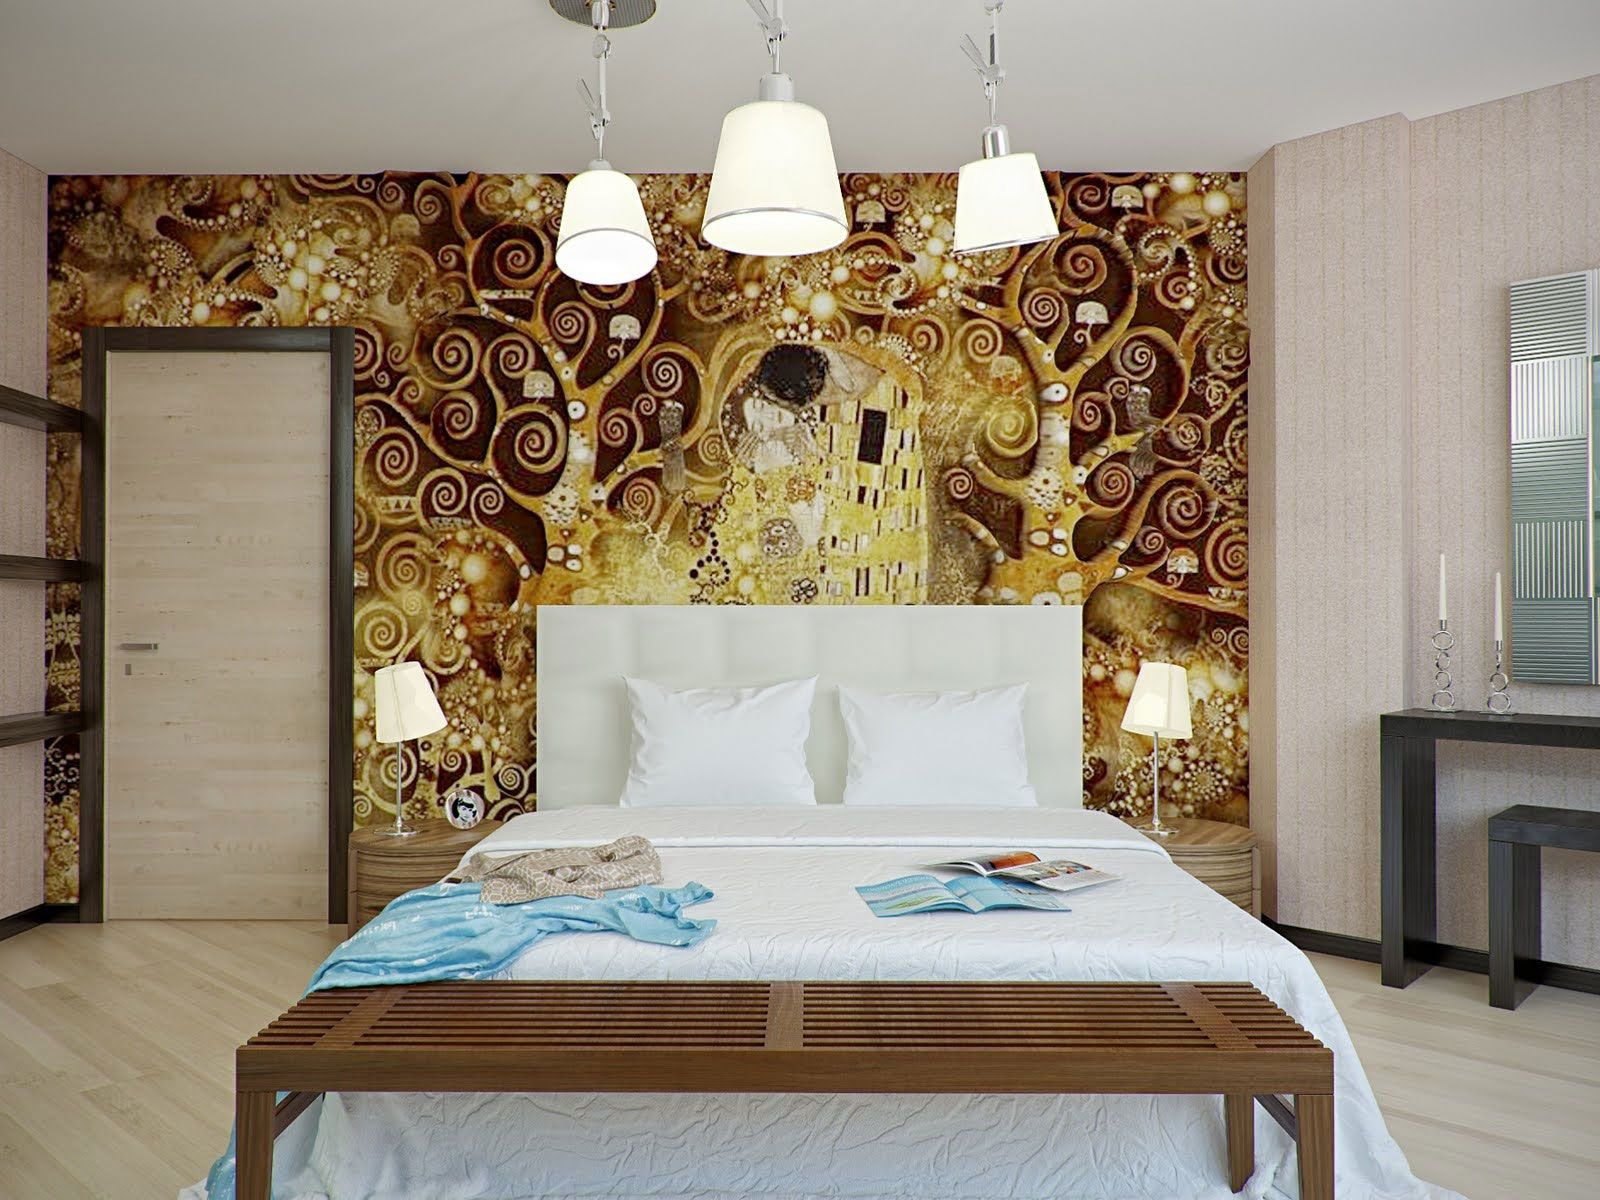 Bold Artistic Wall Decorations For Bedroom: Artistic Gold Brown White Wall  Decor Bedroom Design